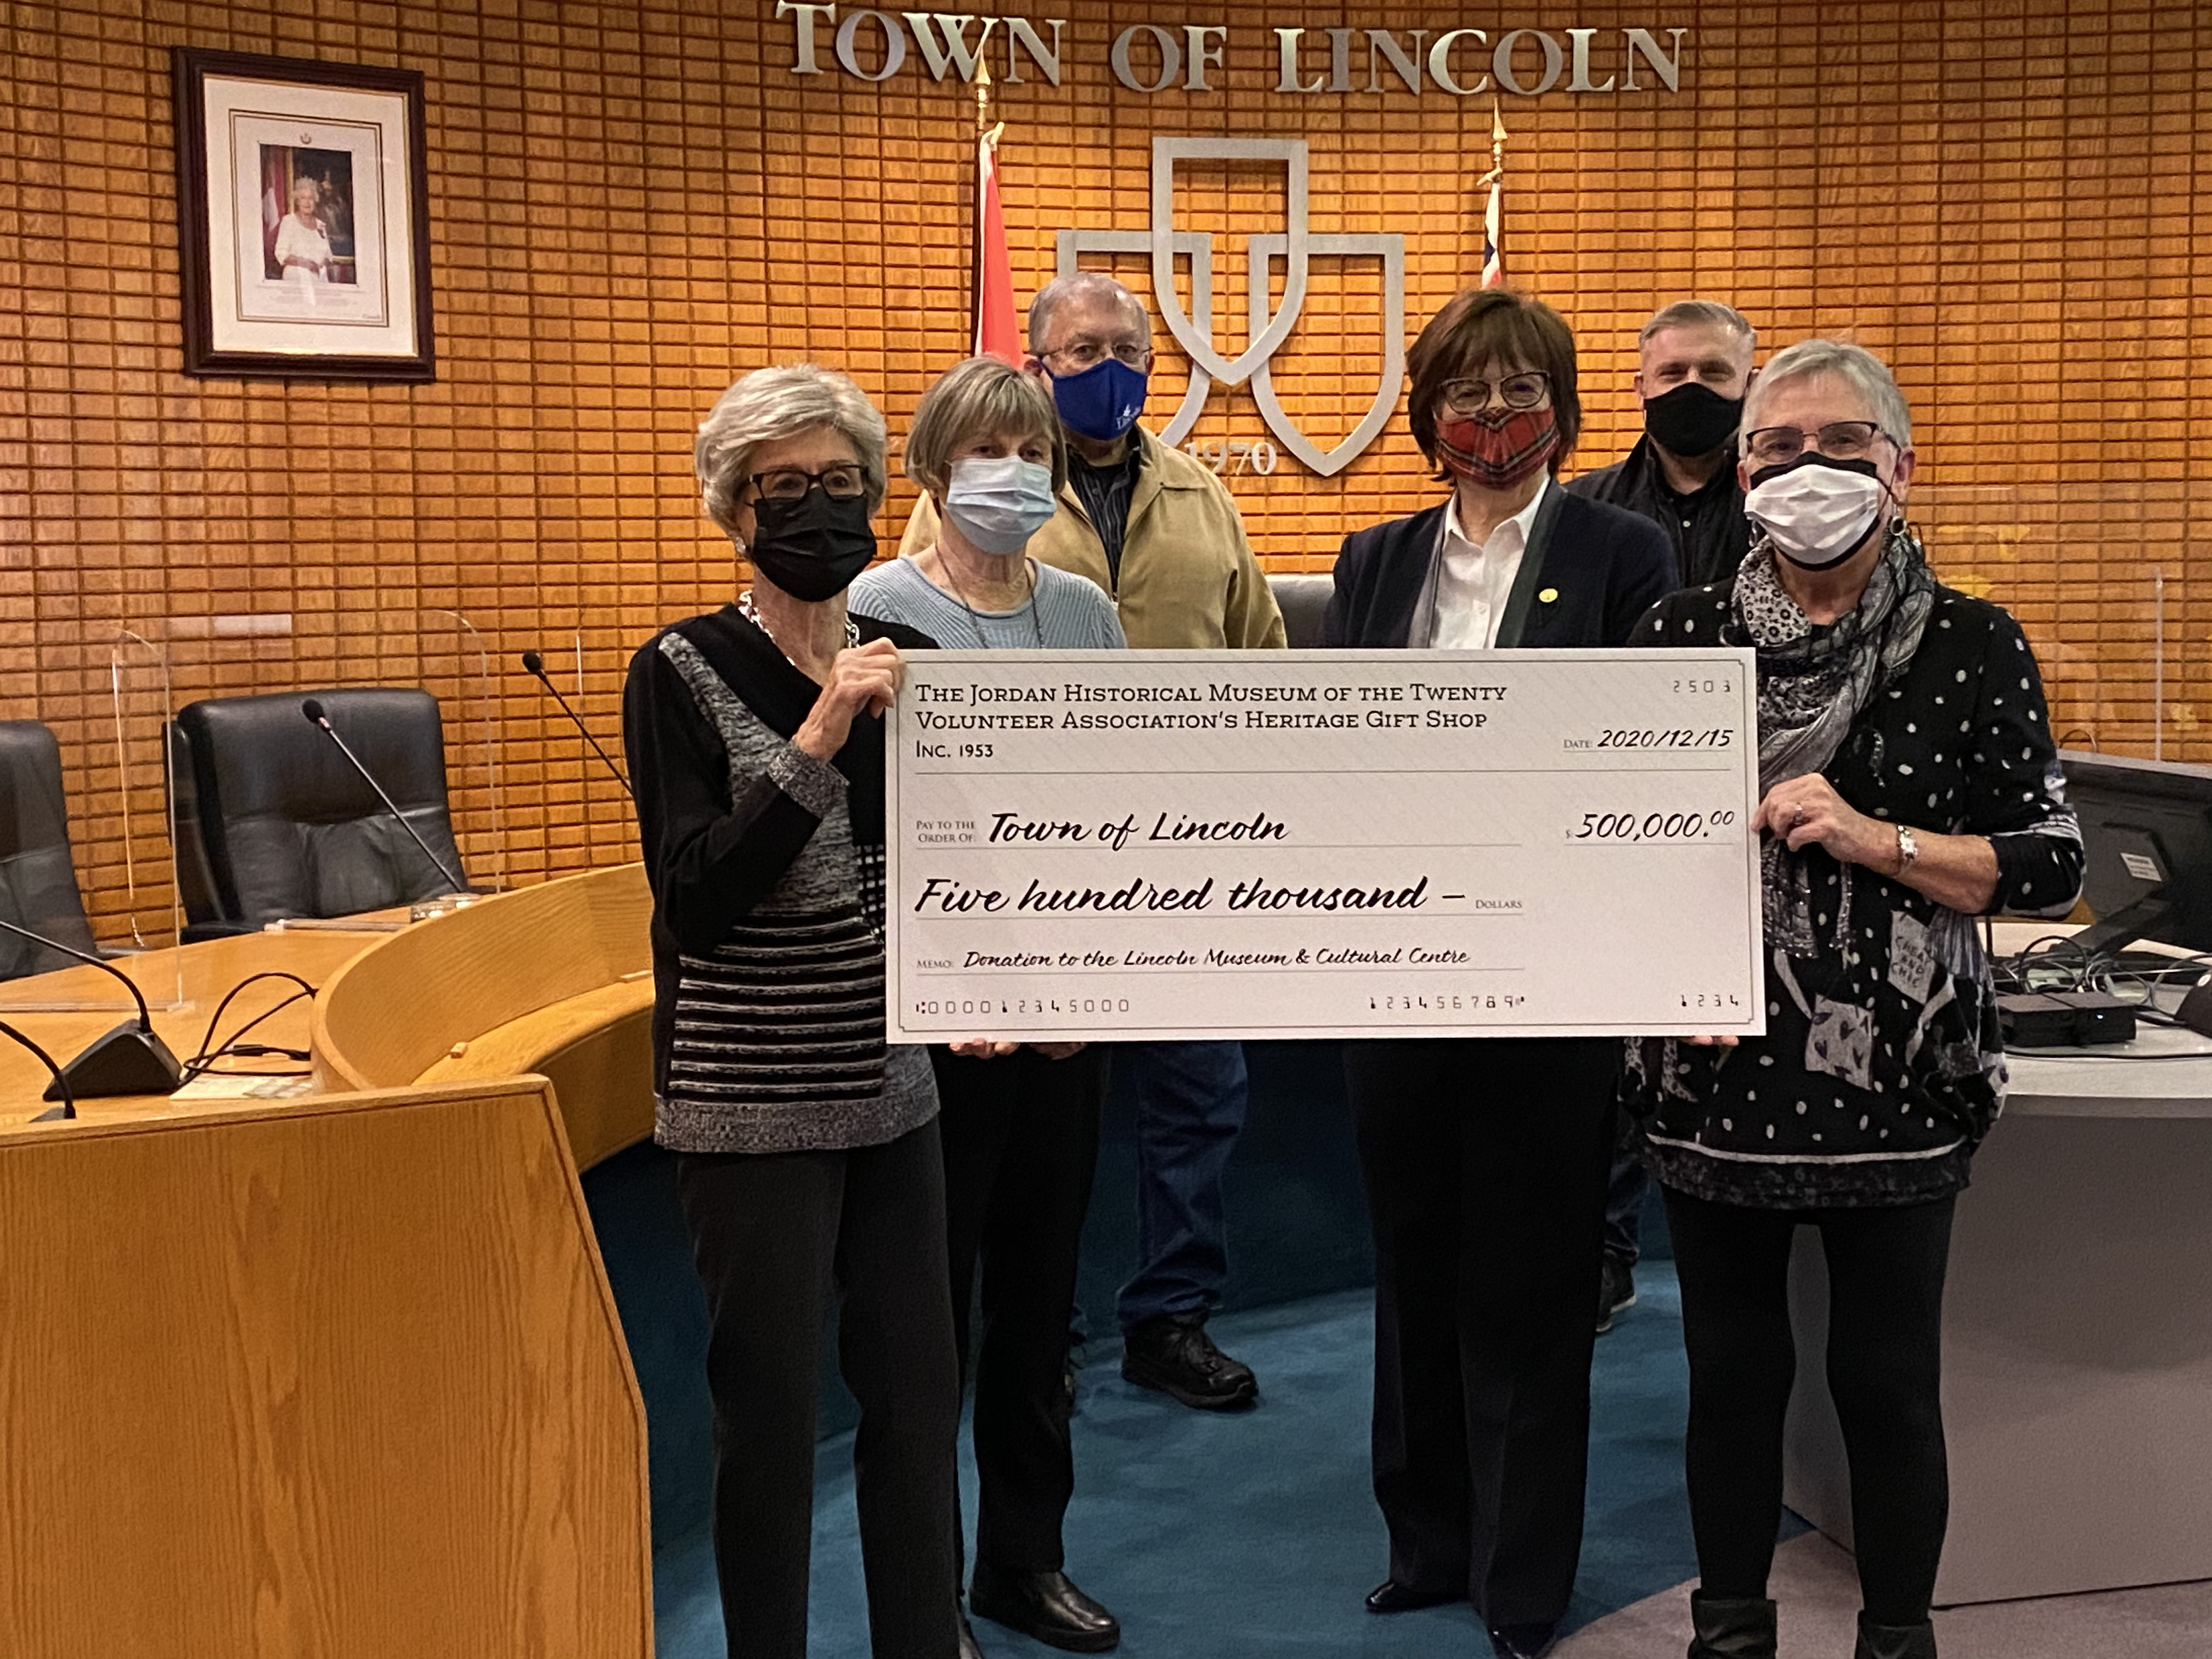 Cheque presentation by Museum Volunteer Association to Town of Lincoln